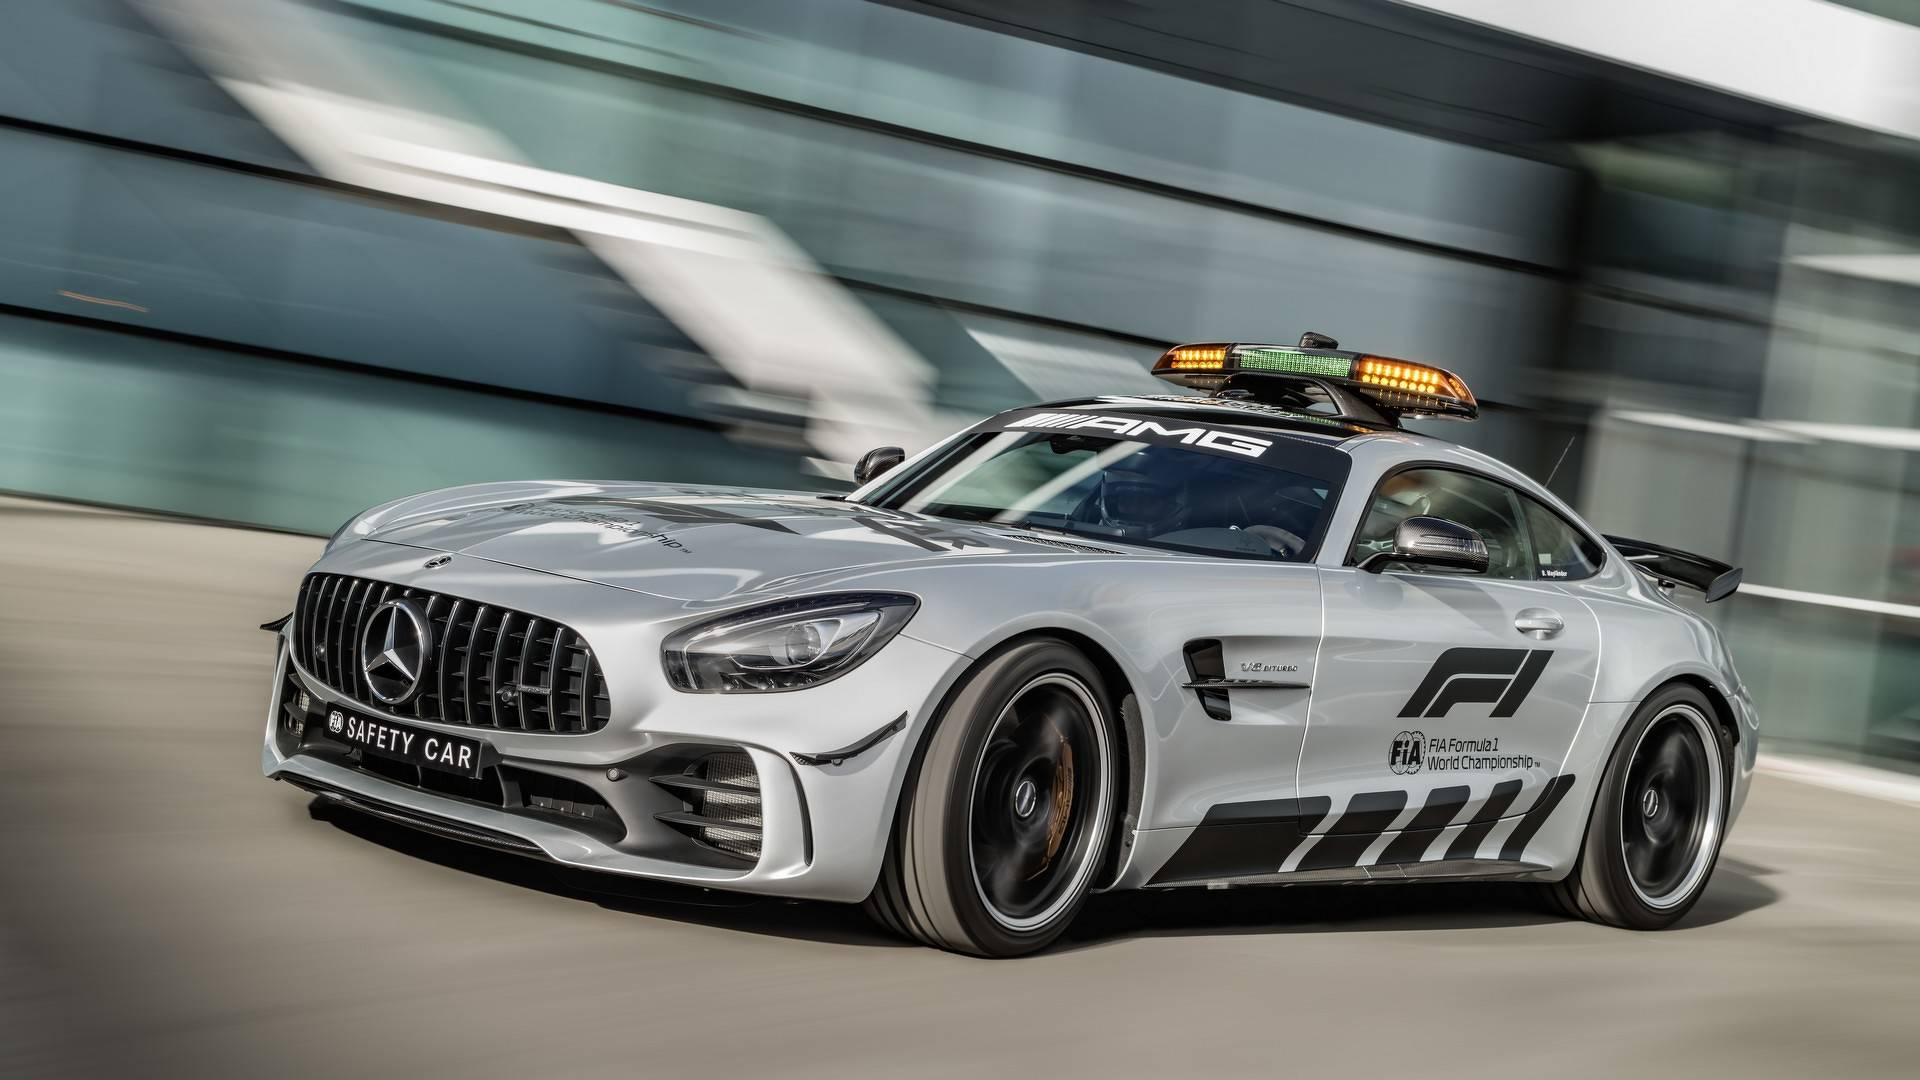 mercedes amg gt r nowy safety car w formule 1 w auto motor i sport. Black Bedroom Furniture Sets. Home Design Ideas